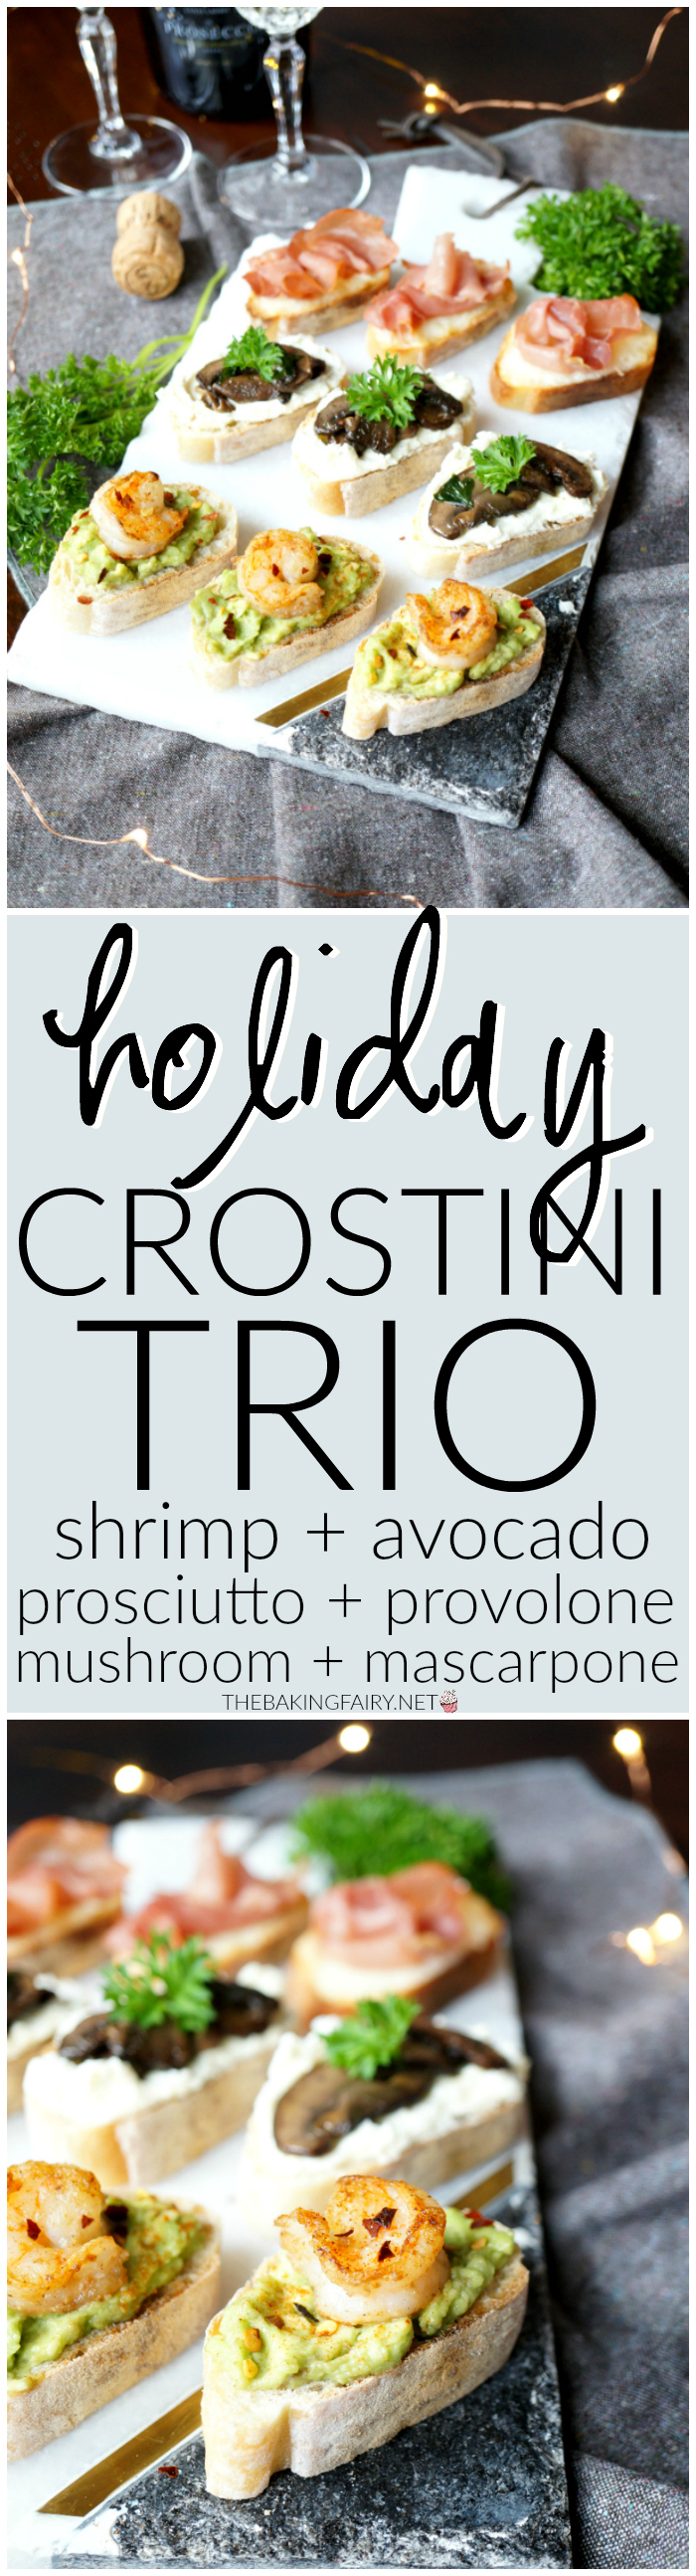 holiday crostini trio | The Baking Fairy